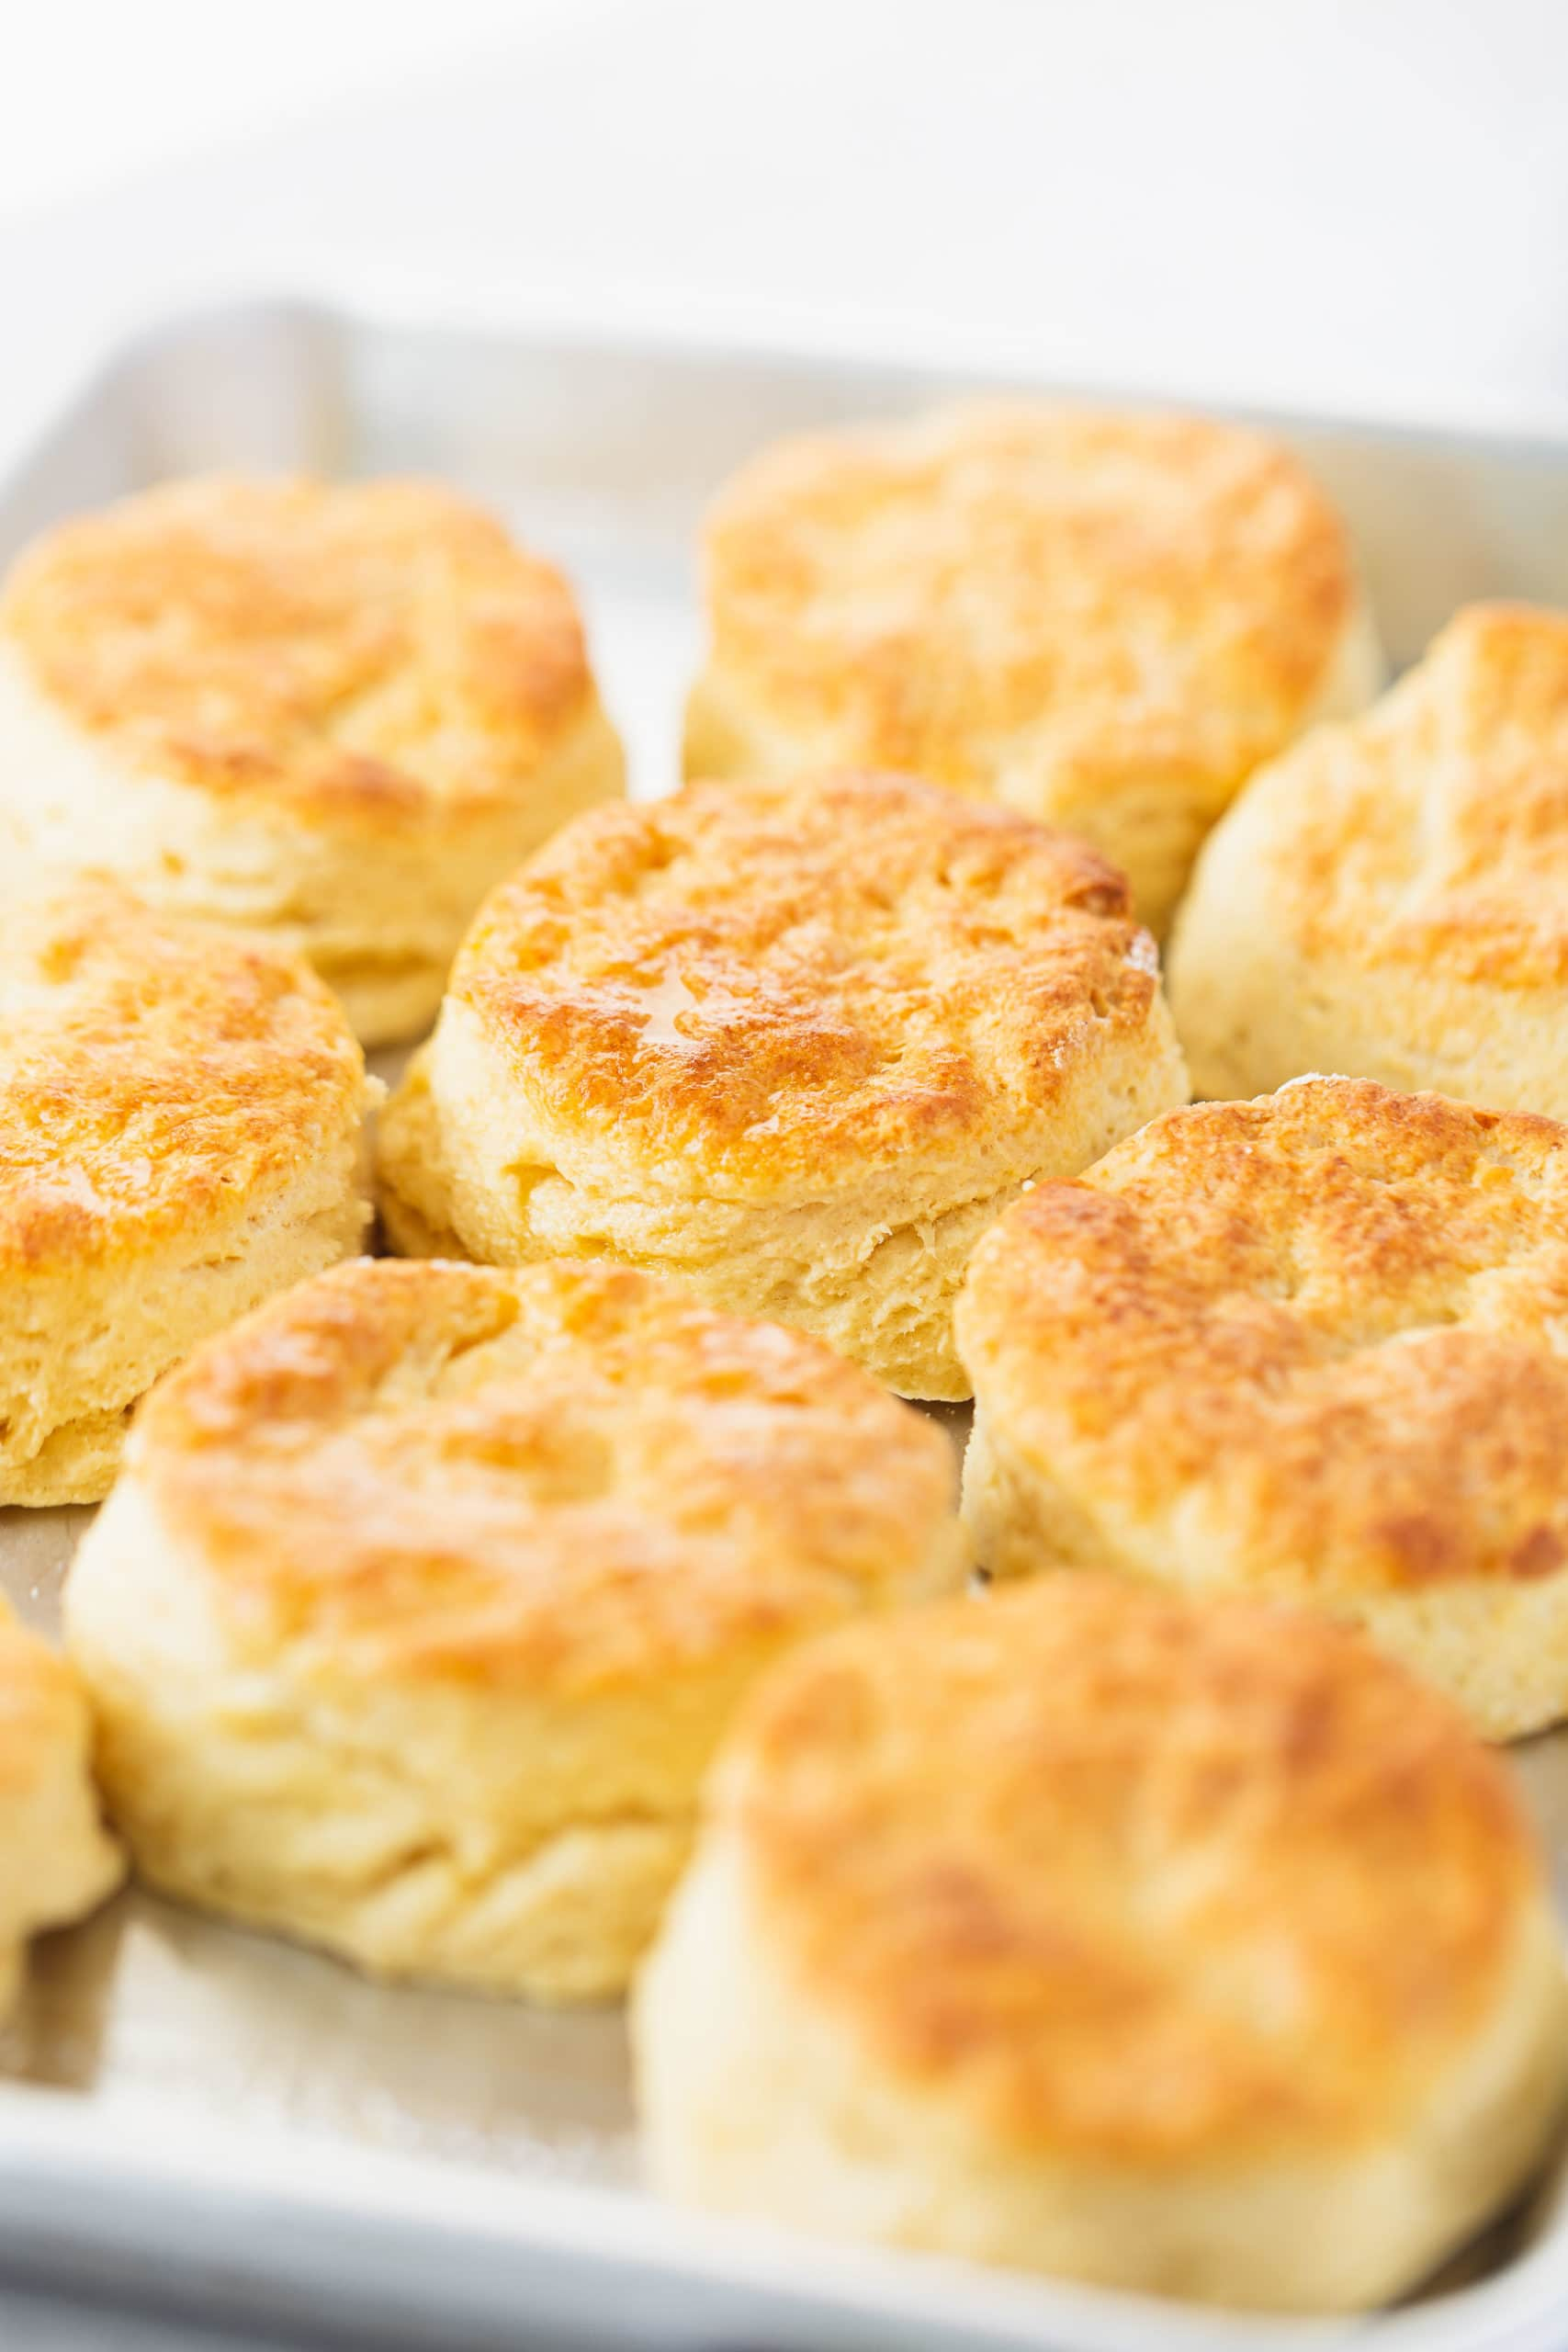 A pan full of buttermilk biscuits. They are baked to a golden brown.